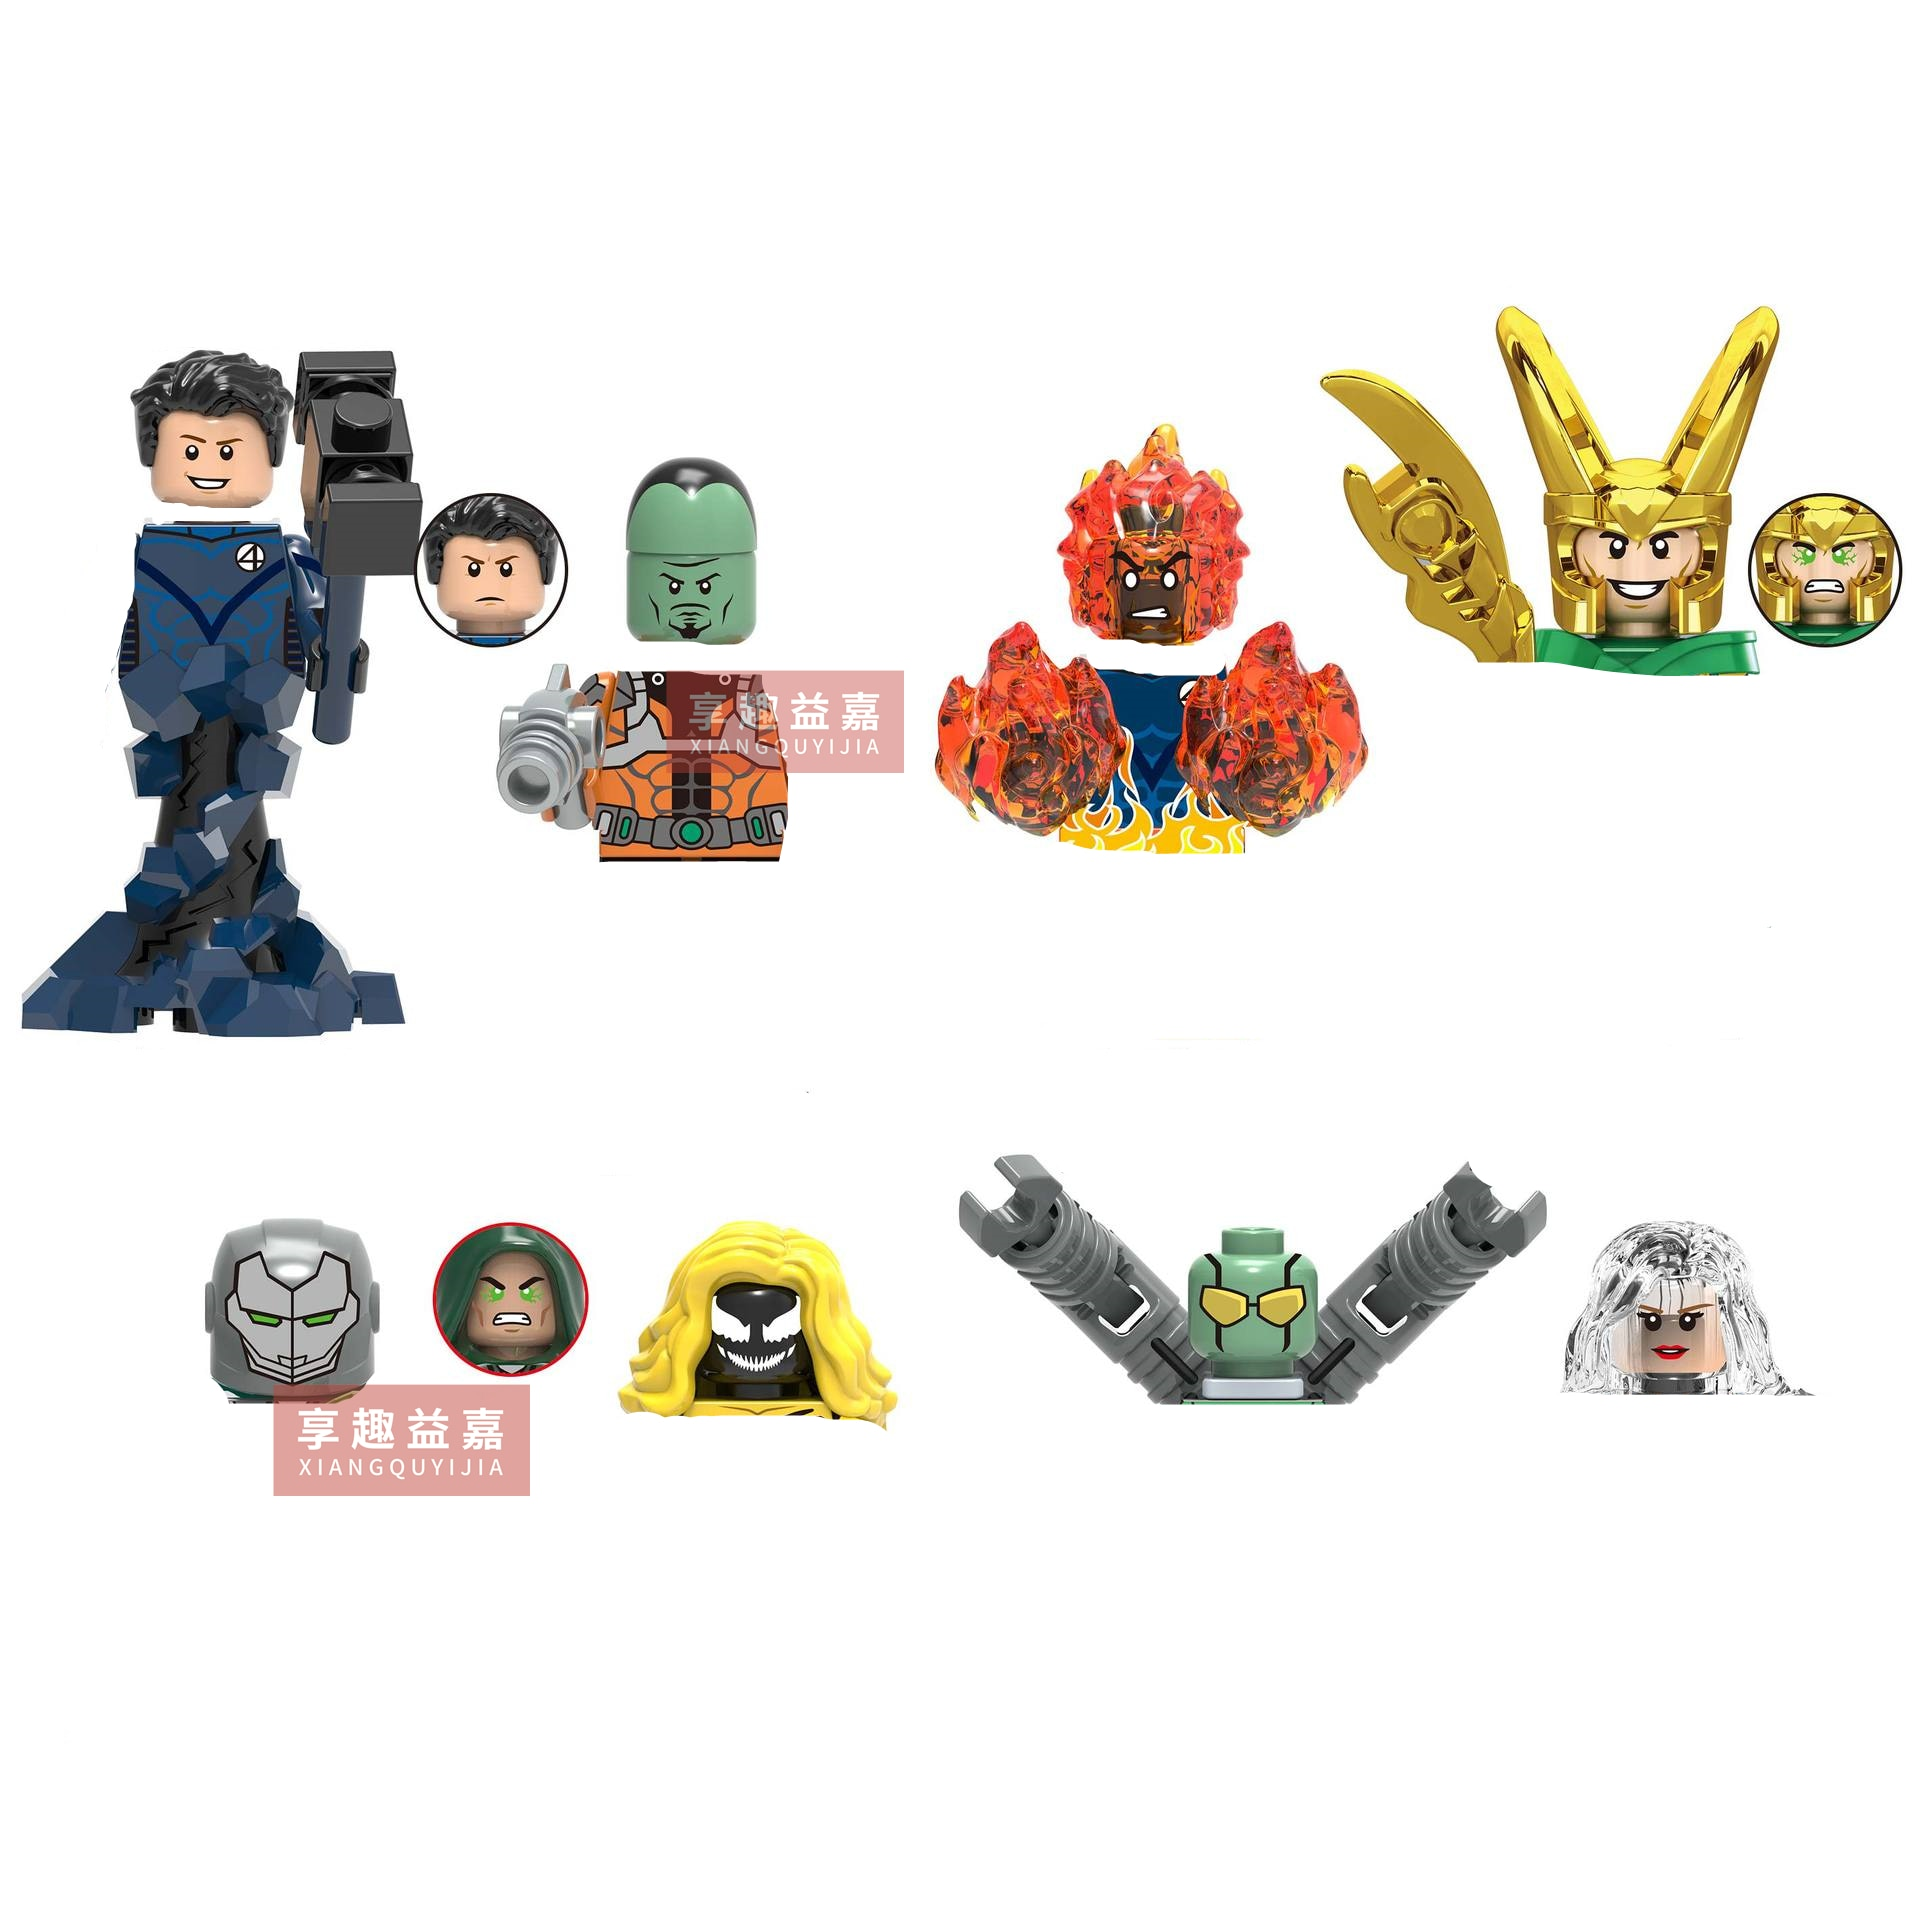 twisty parallel universe блузка X0271 Movie characters Hero Parallel universe Figures Fittings Head Building Block Toys Children MOC accessories brick DIY